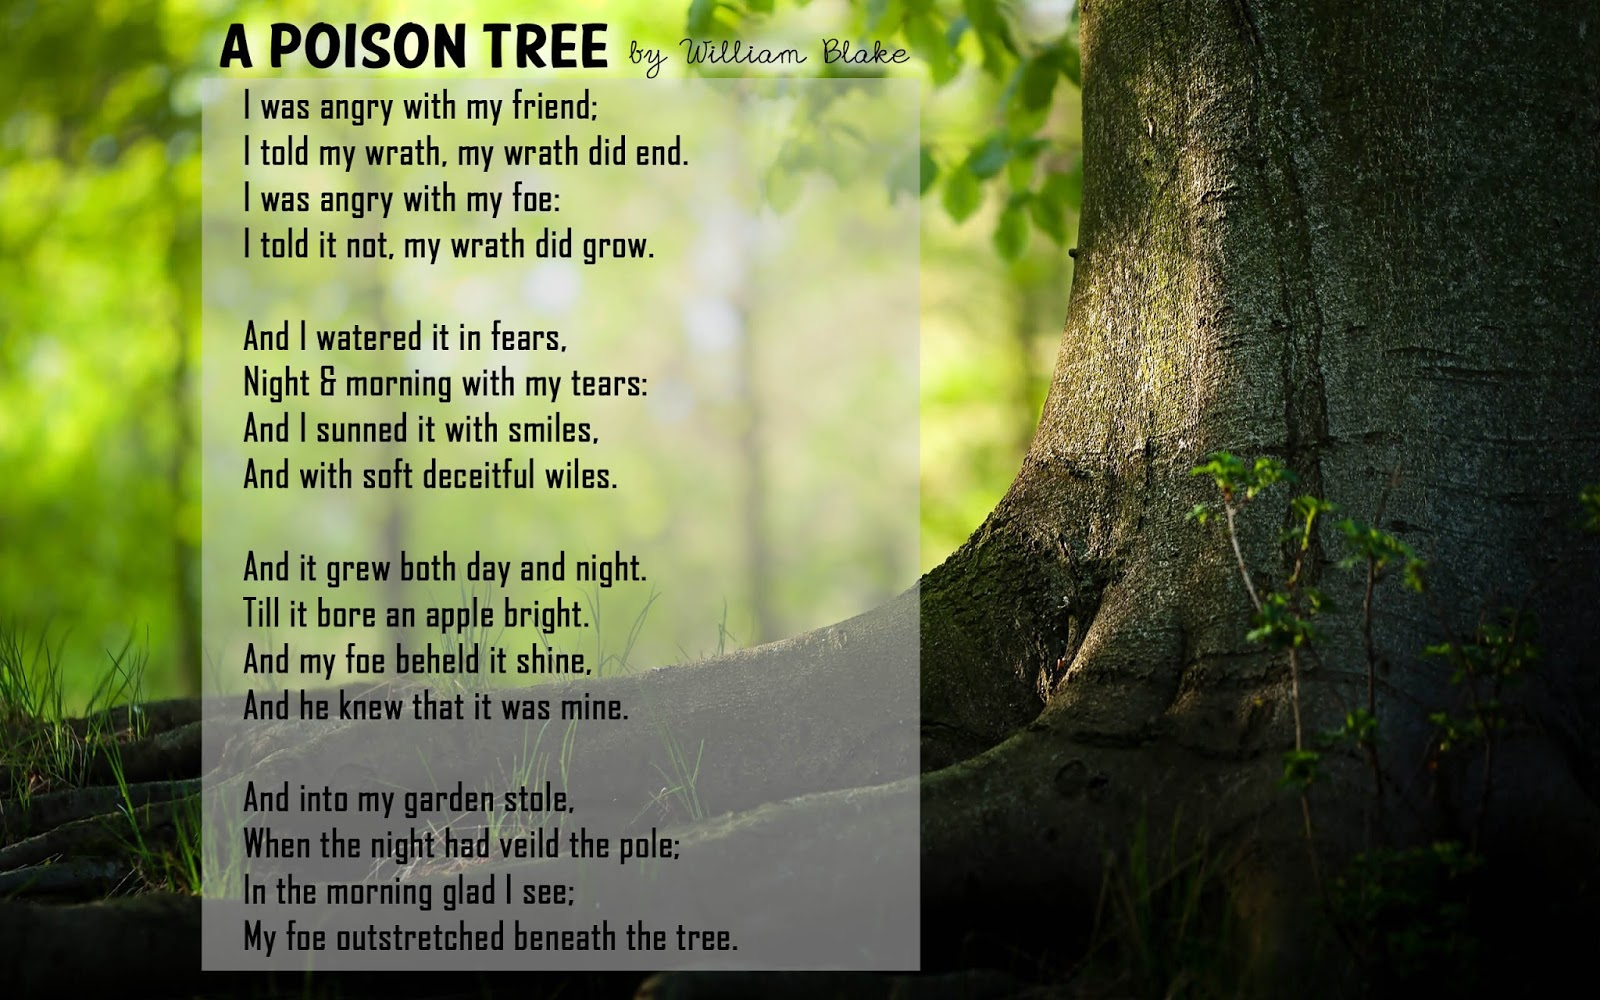 A poison tree poetry essay